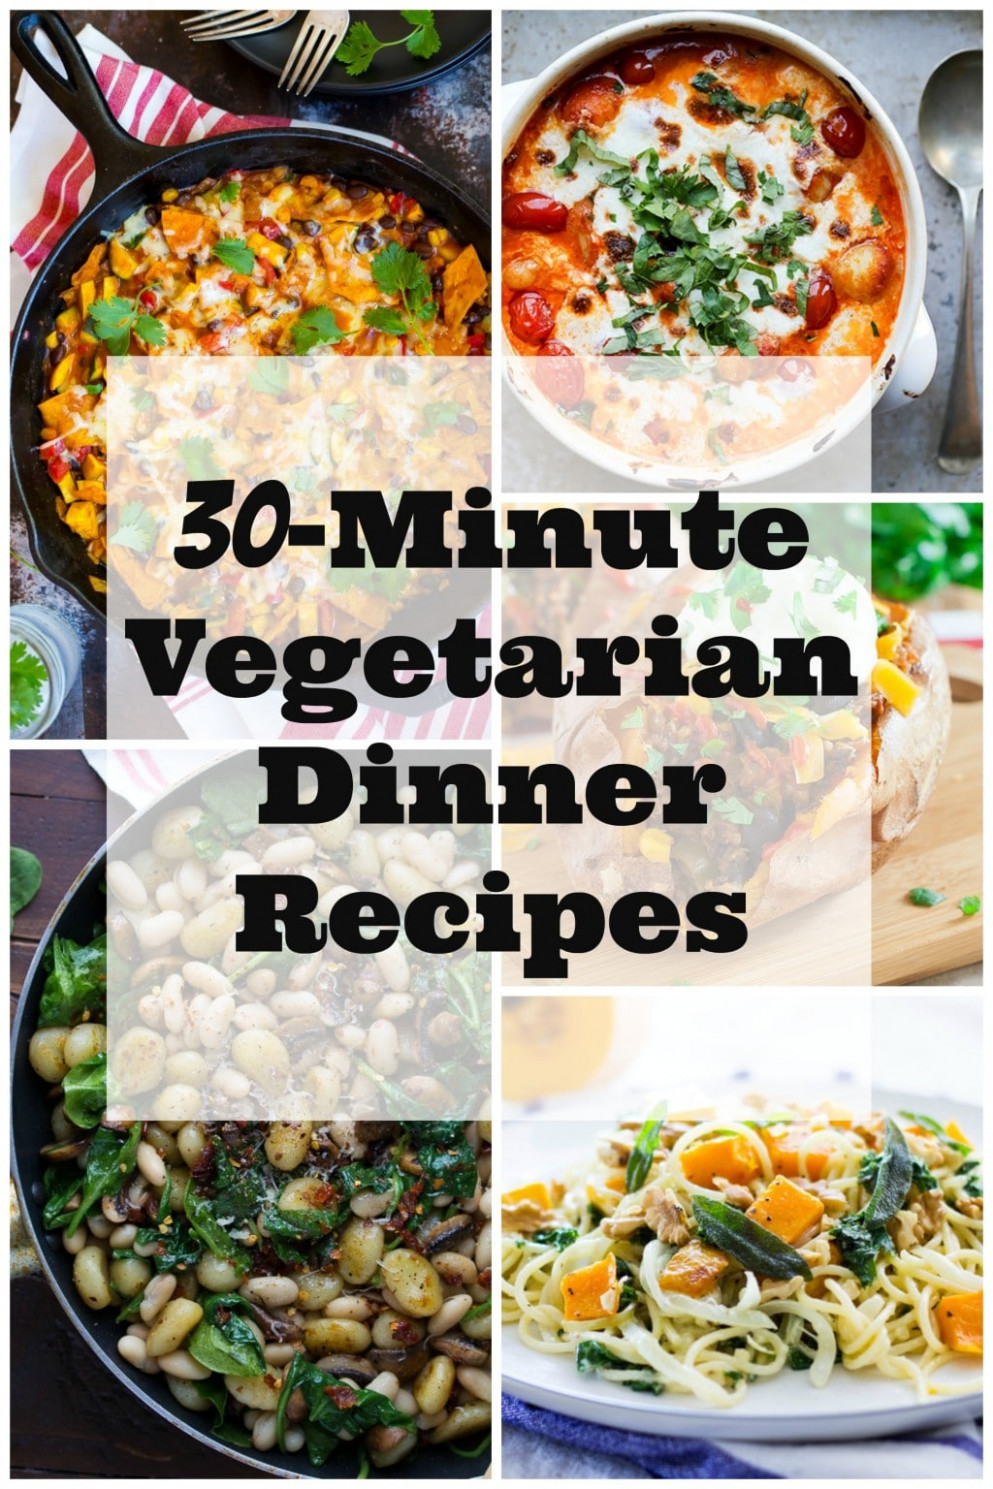 30-Minute Vegetarian Dinner Recipes - She Likes Food - pinterest recipes dinner